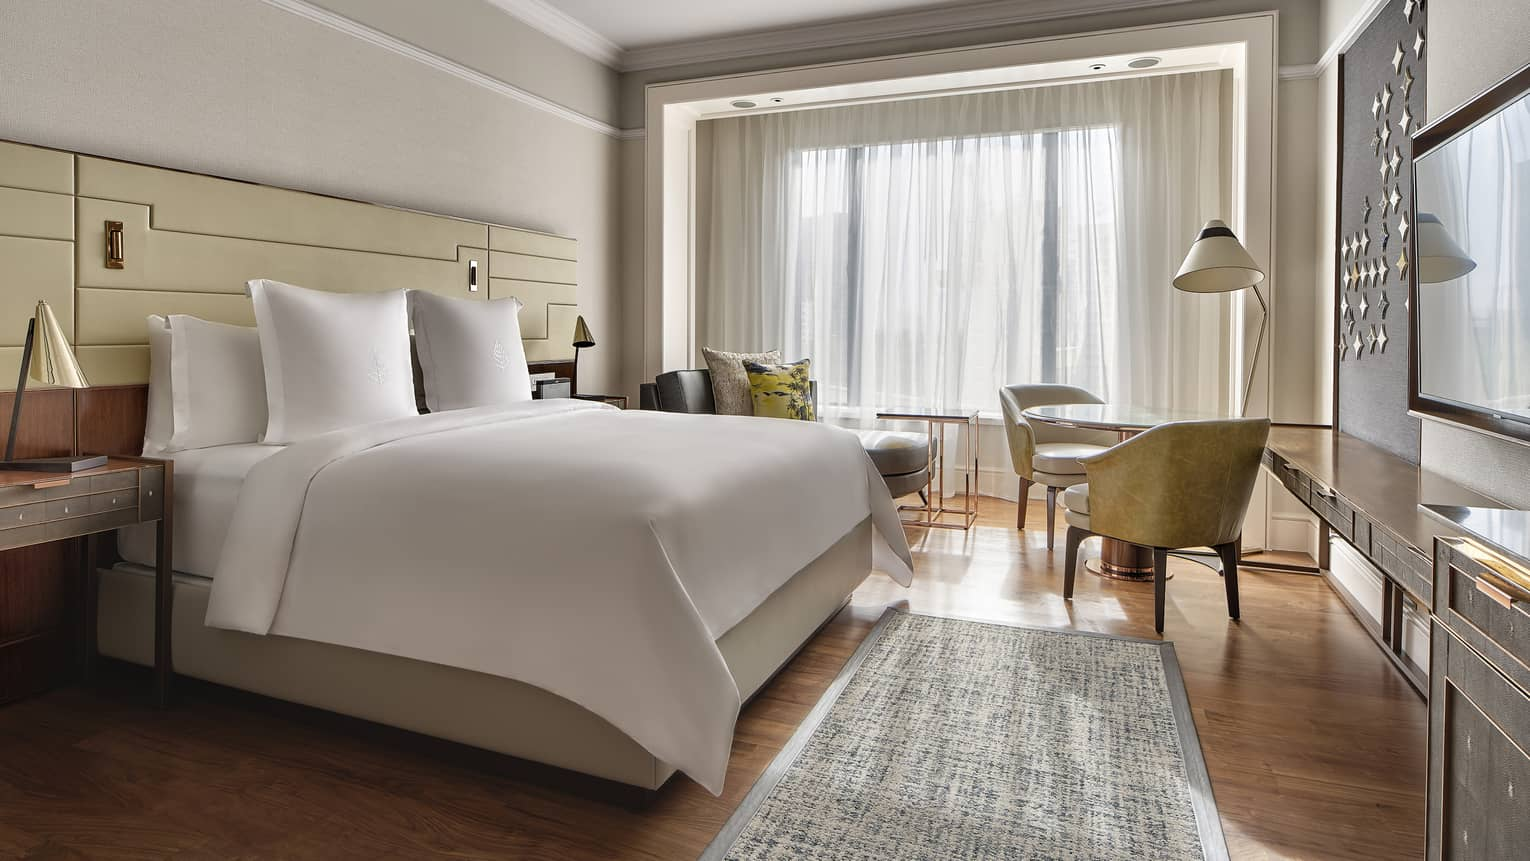 Light-filled hotel room with white king bed, wood floors and rug, two arm chairs, sheer curtains